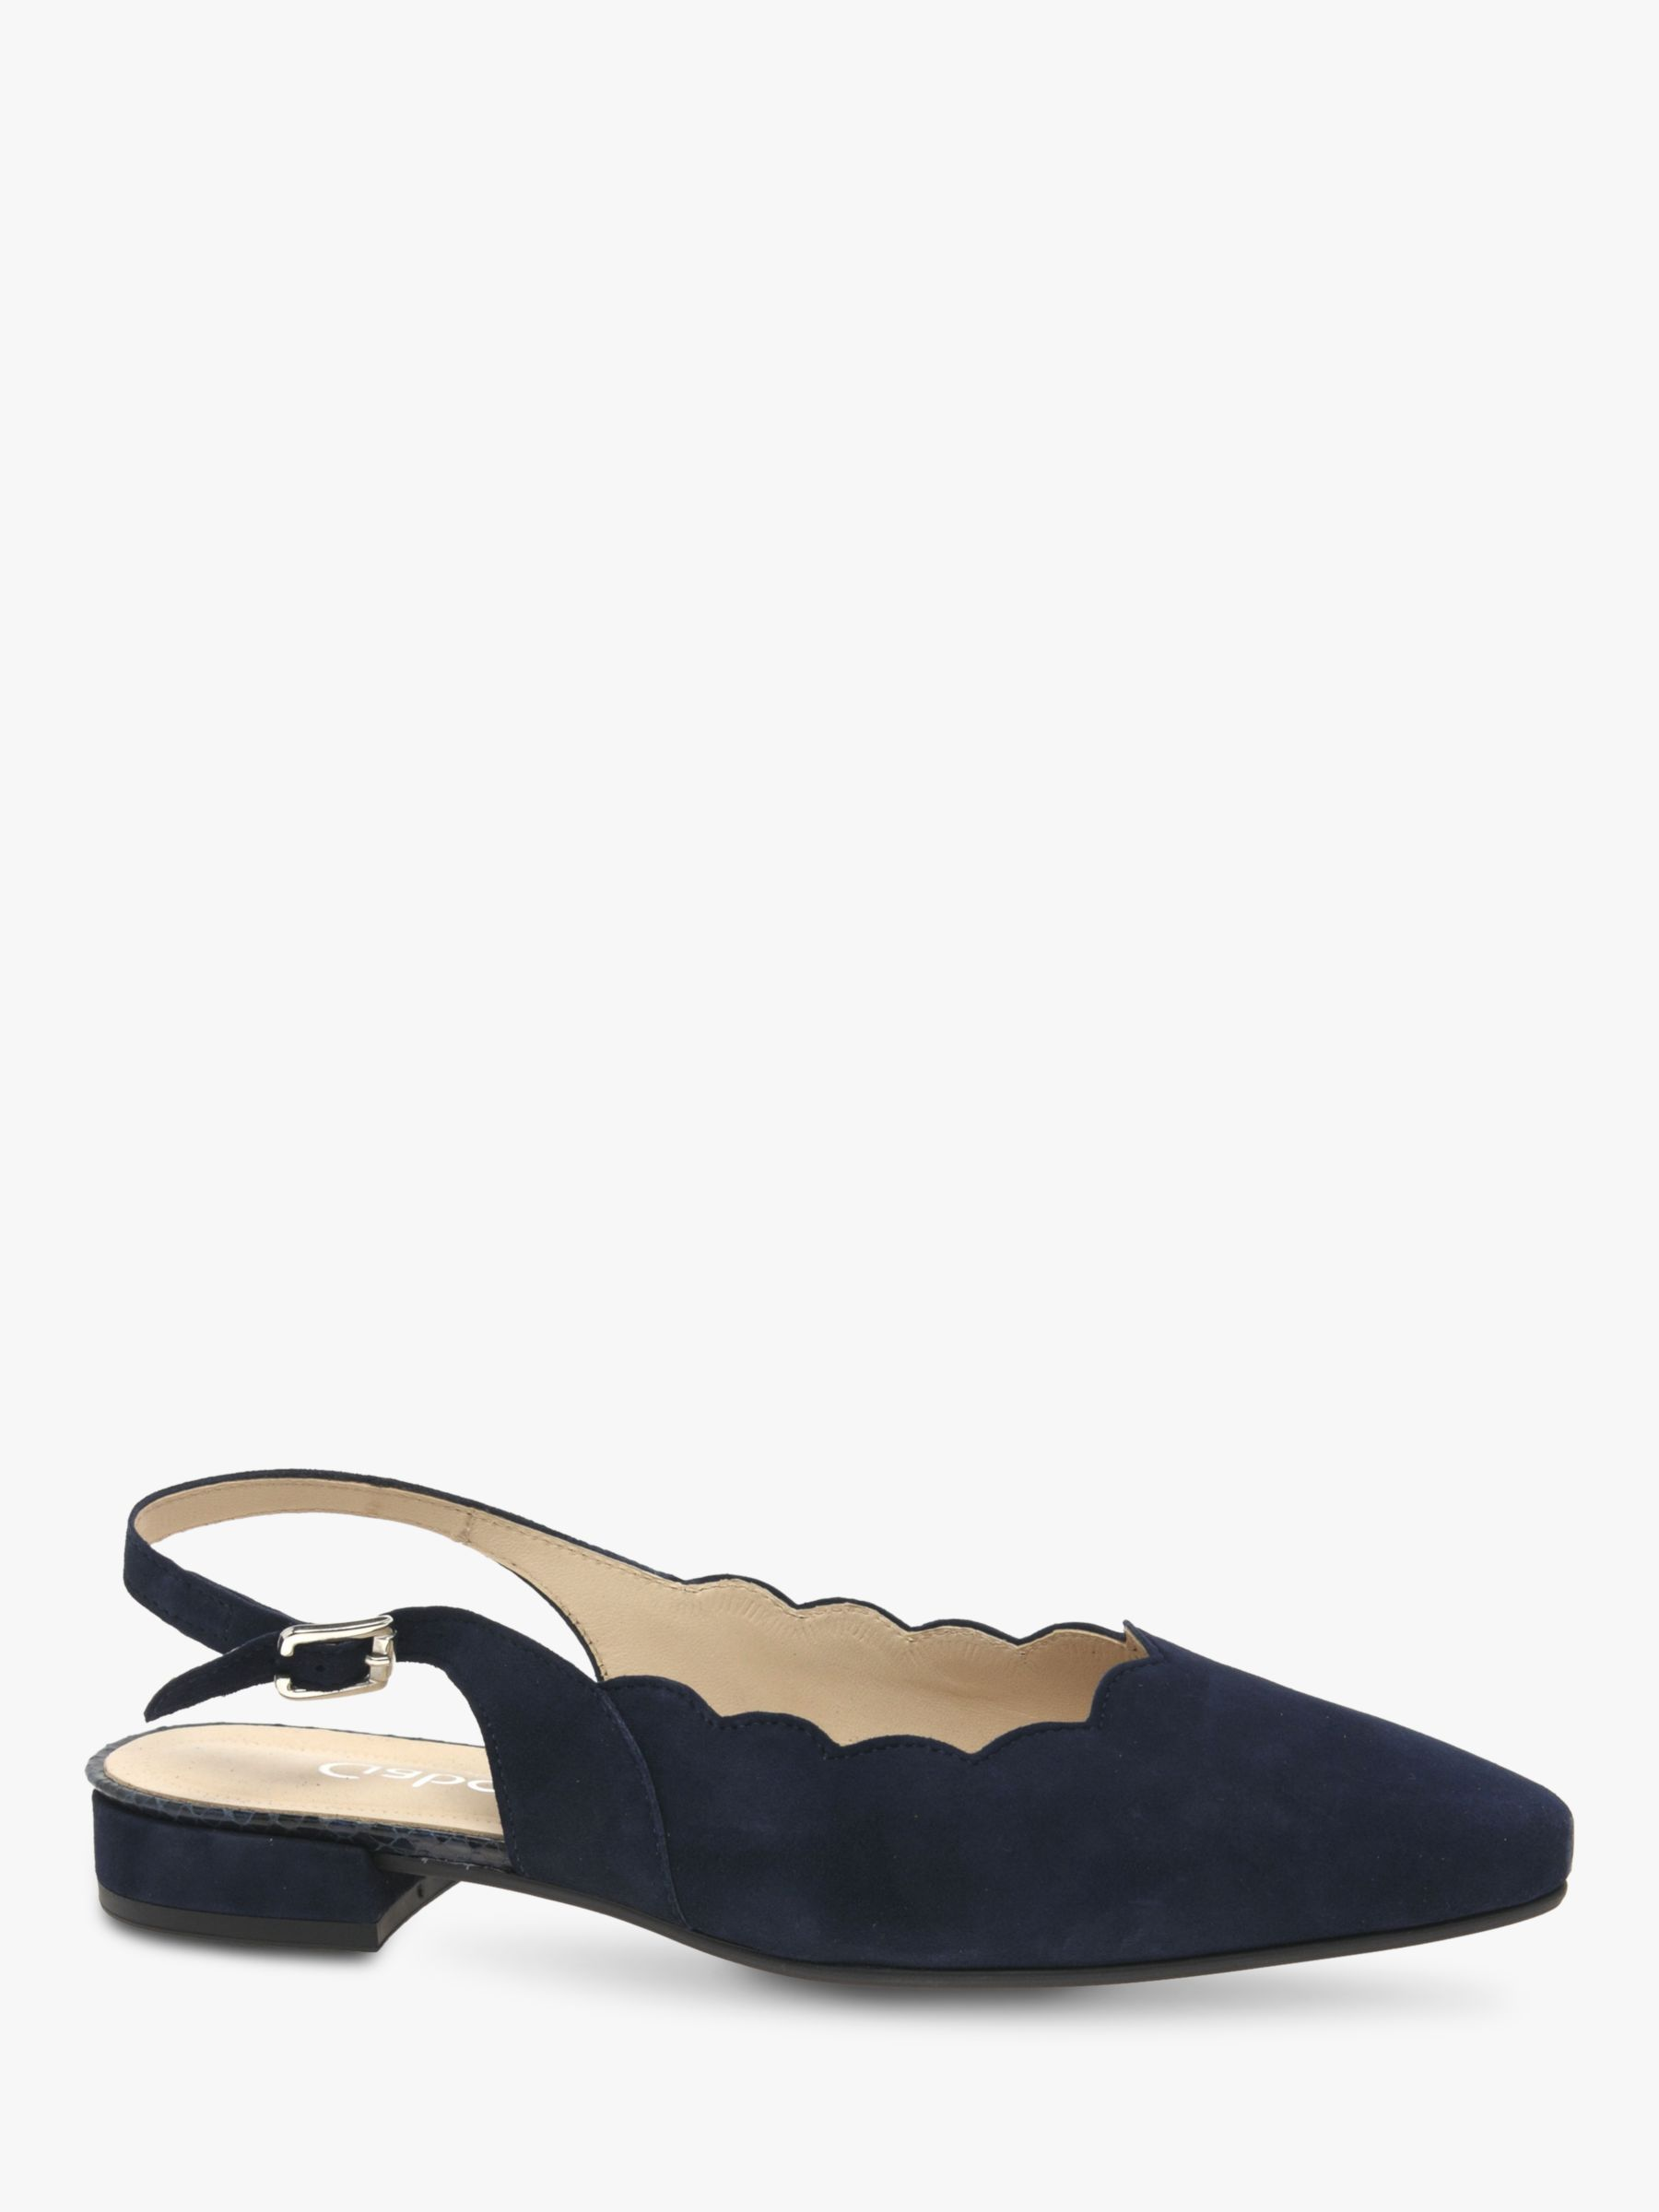 Gabor Gabor Maple Suede Wide Fit Court Shoes, Navy